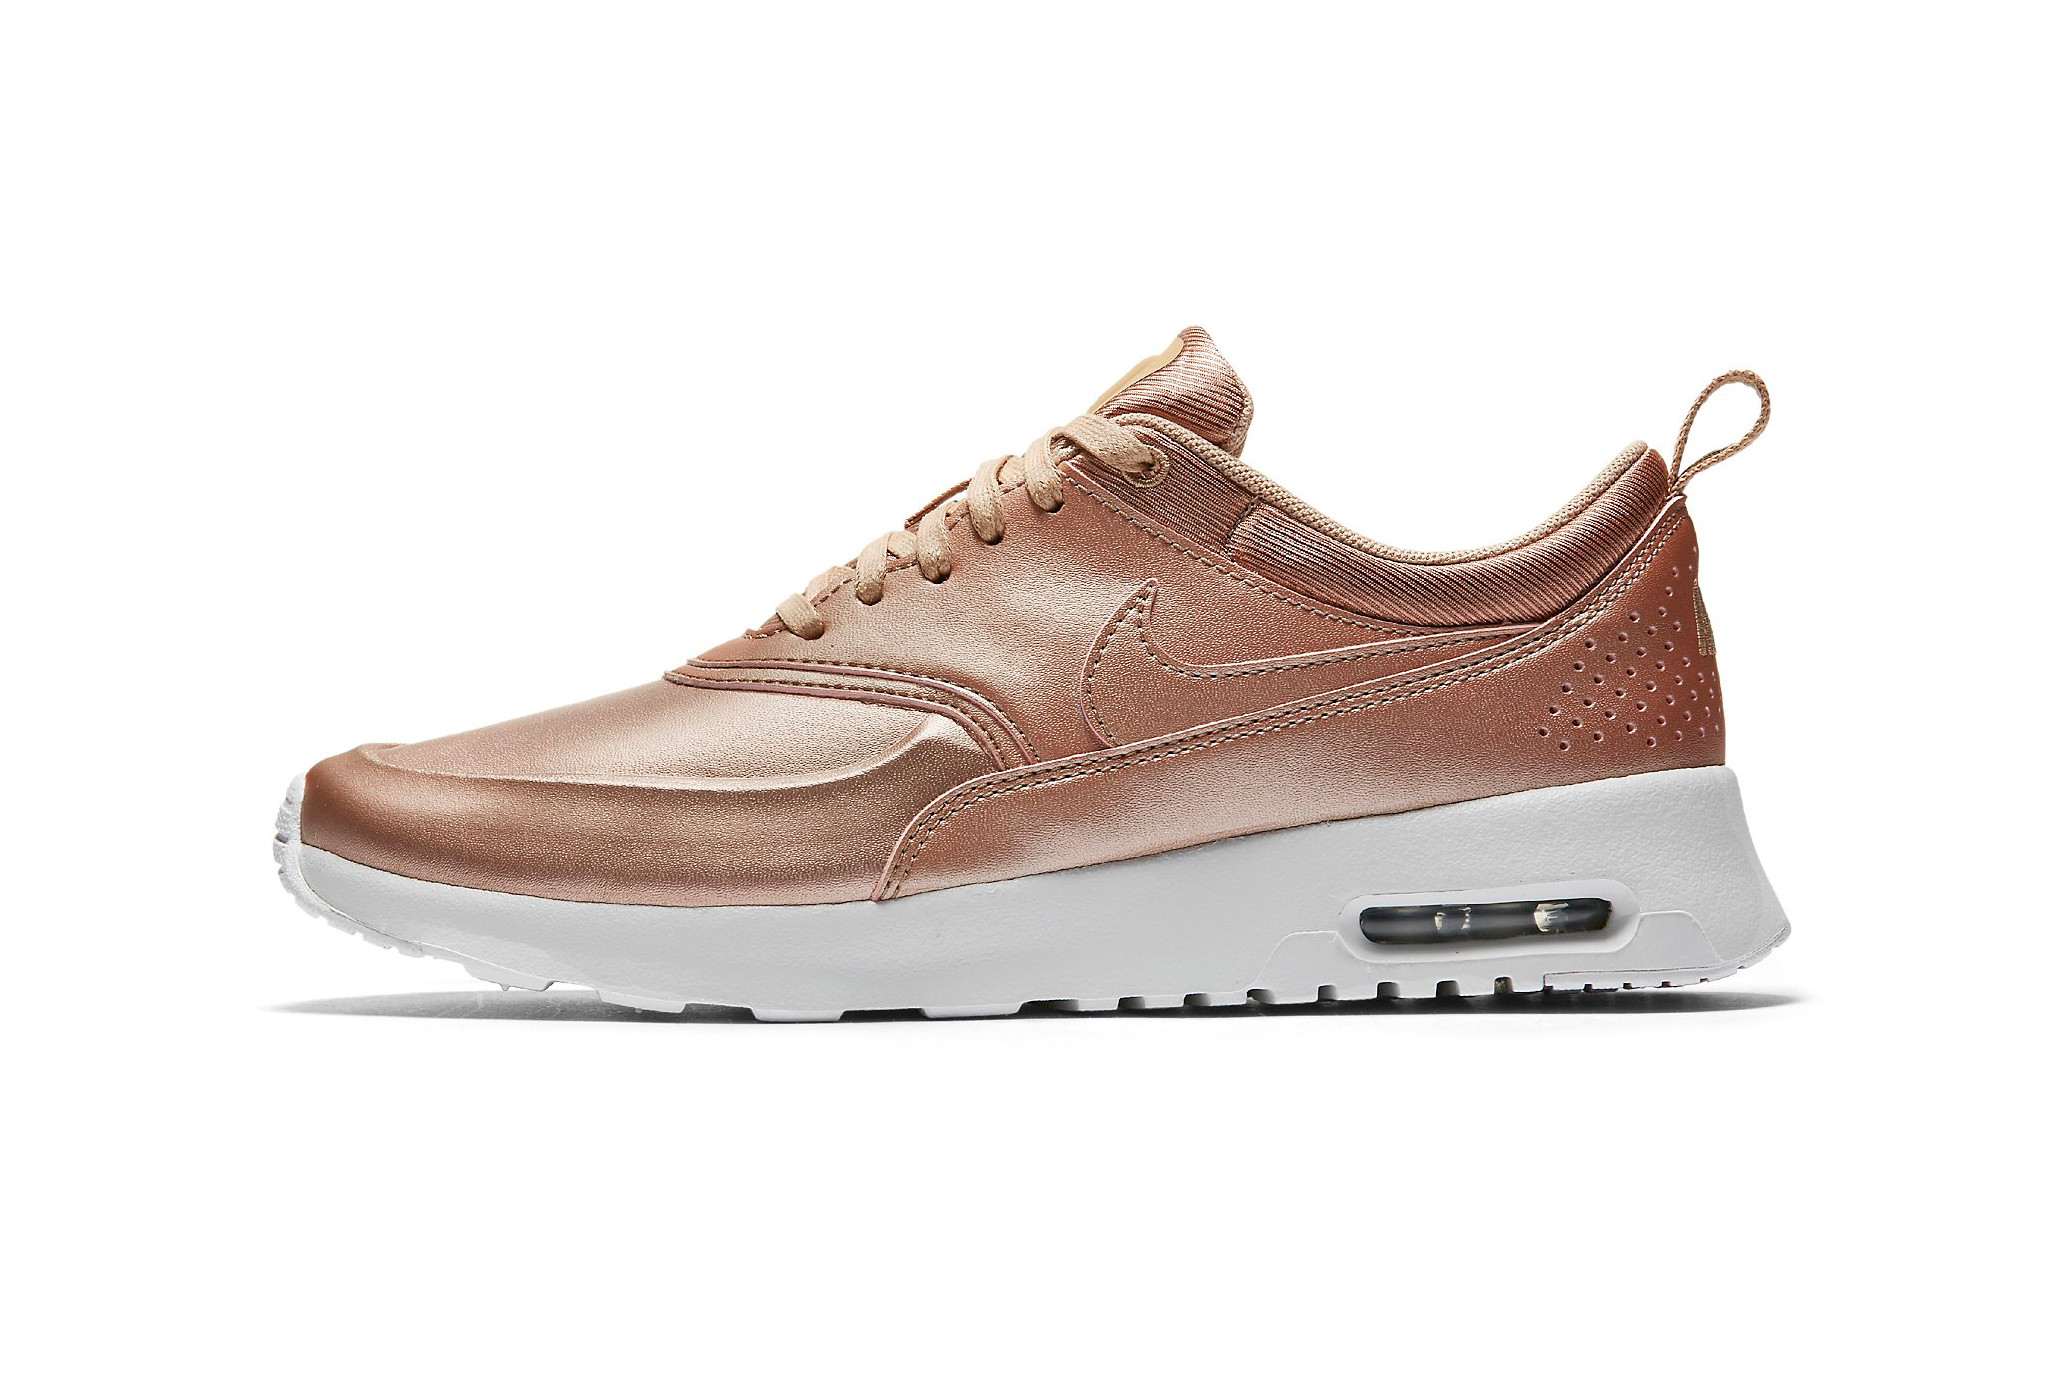 Bandier Air Max Thea in Rose Gold